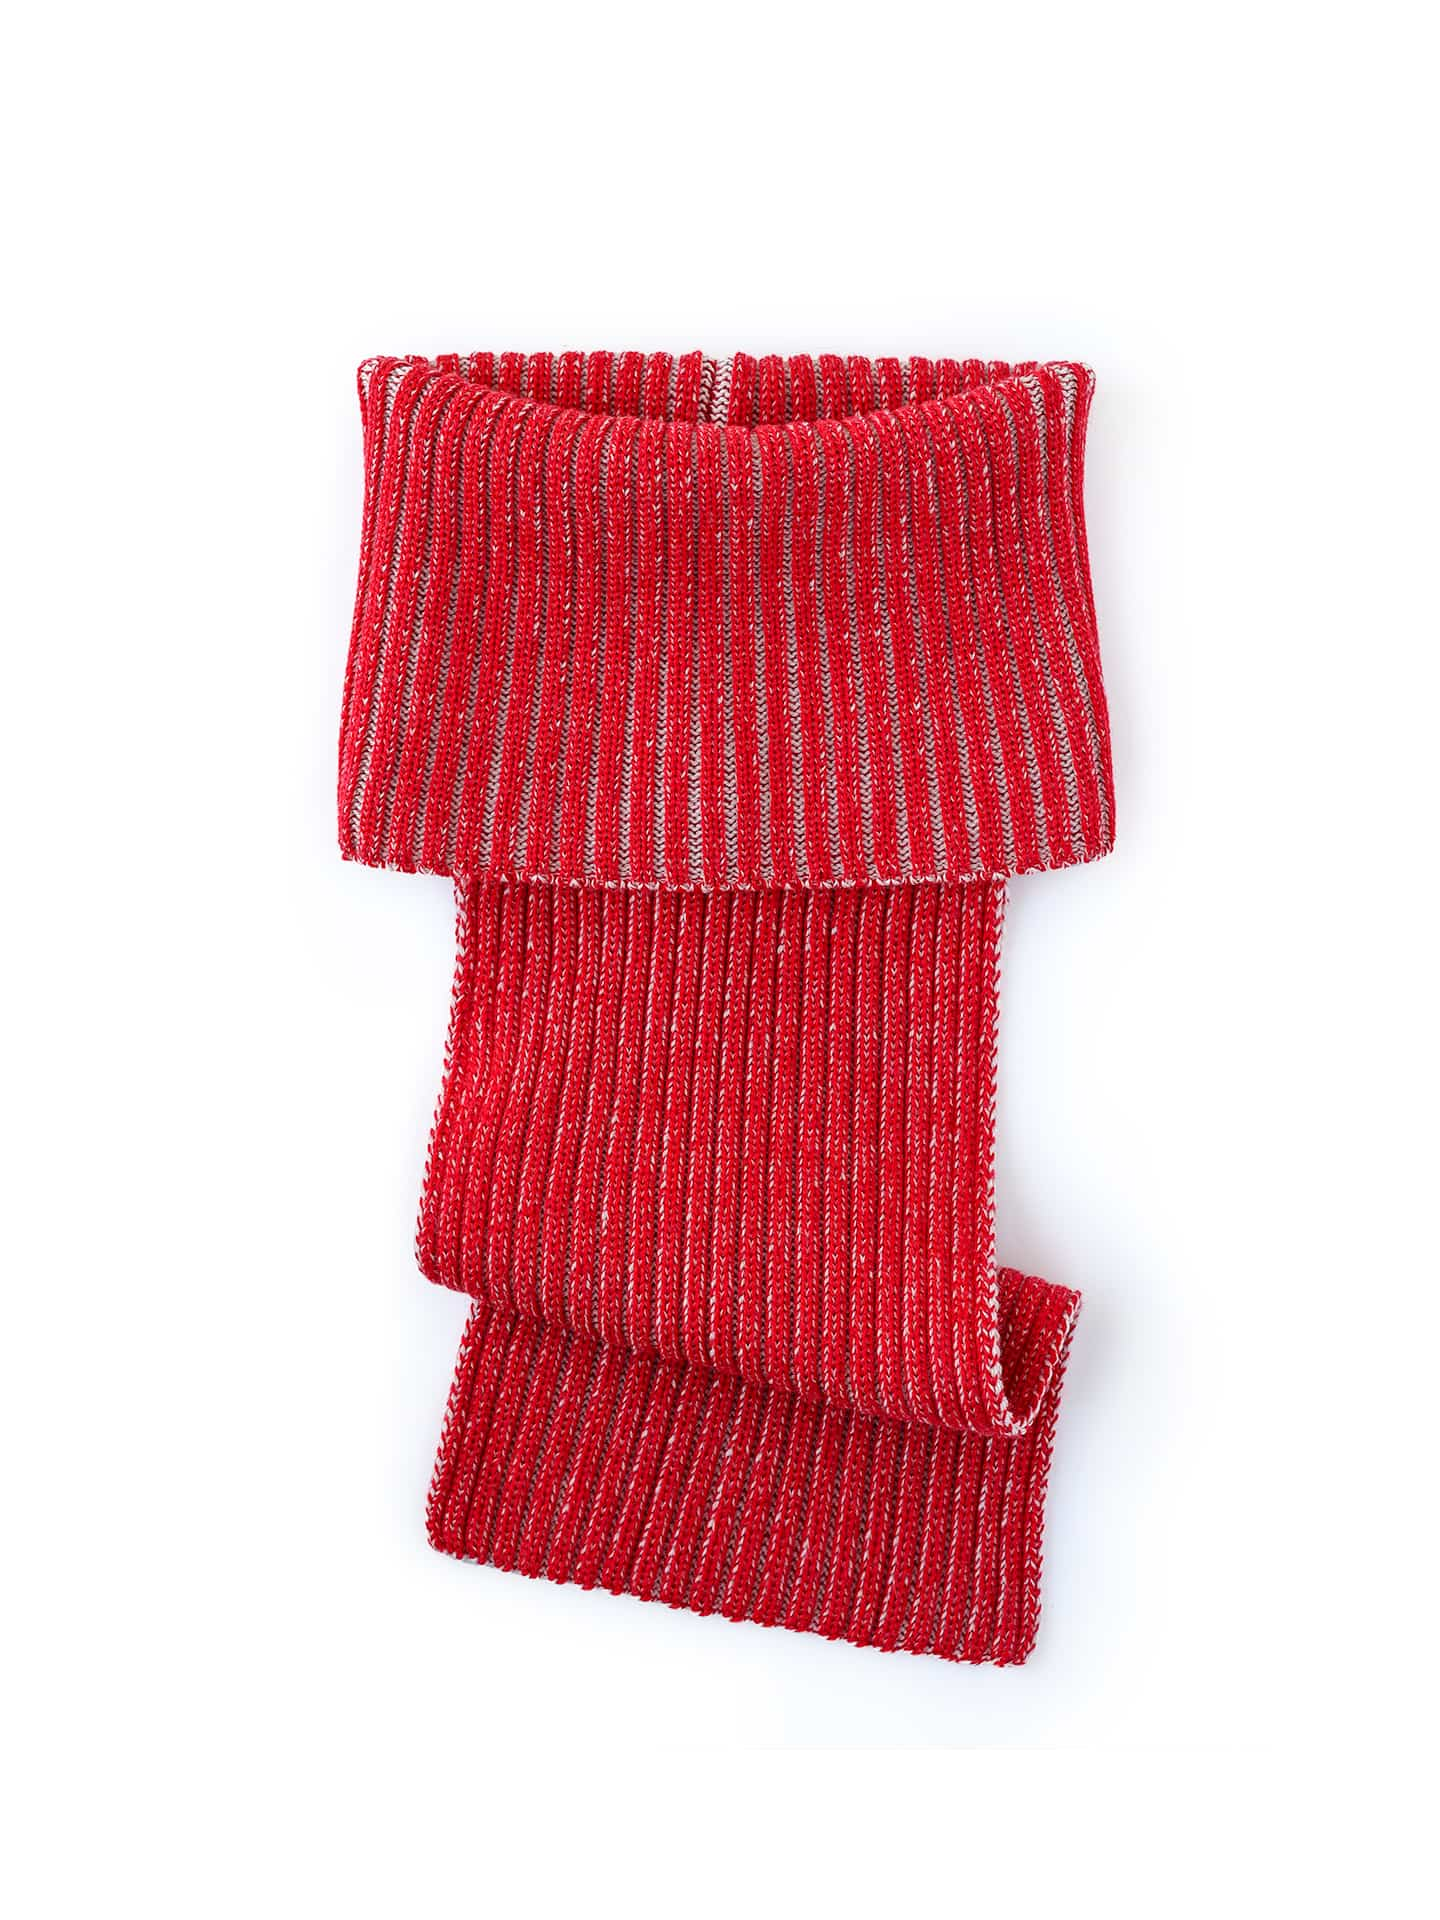 Extended Neck Scarf - Red & Ivory